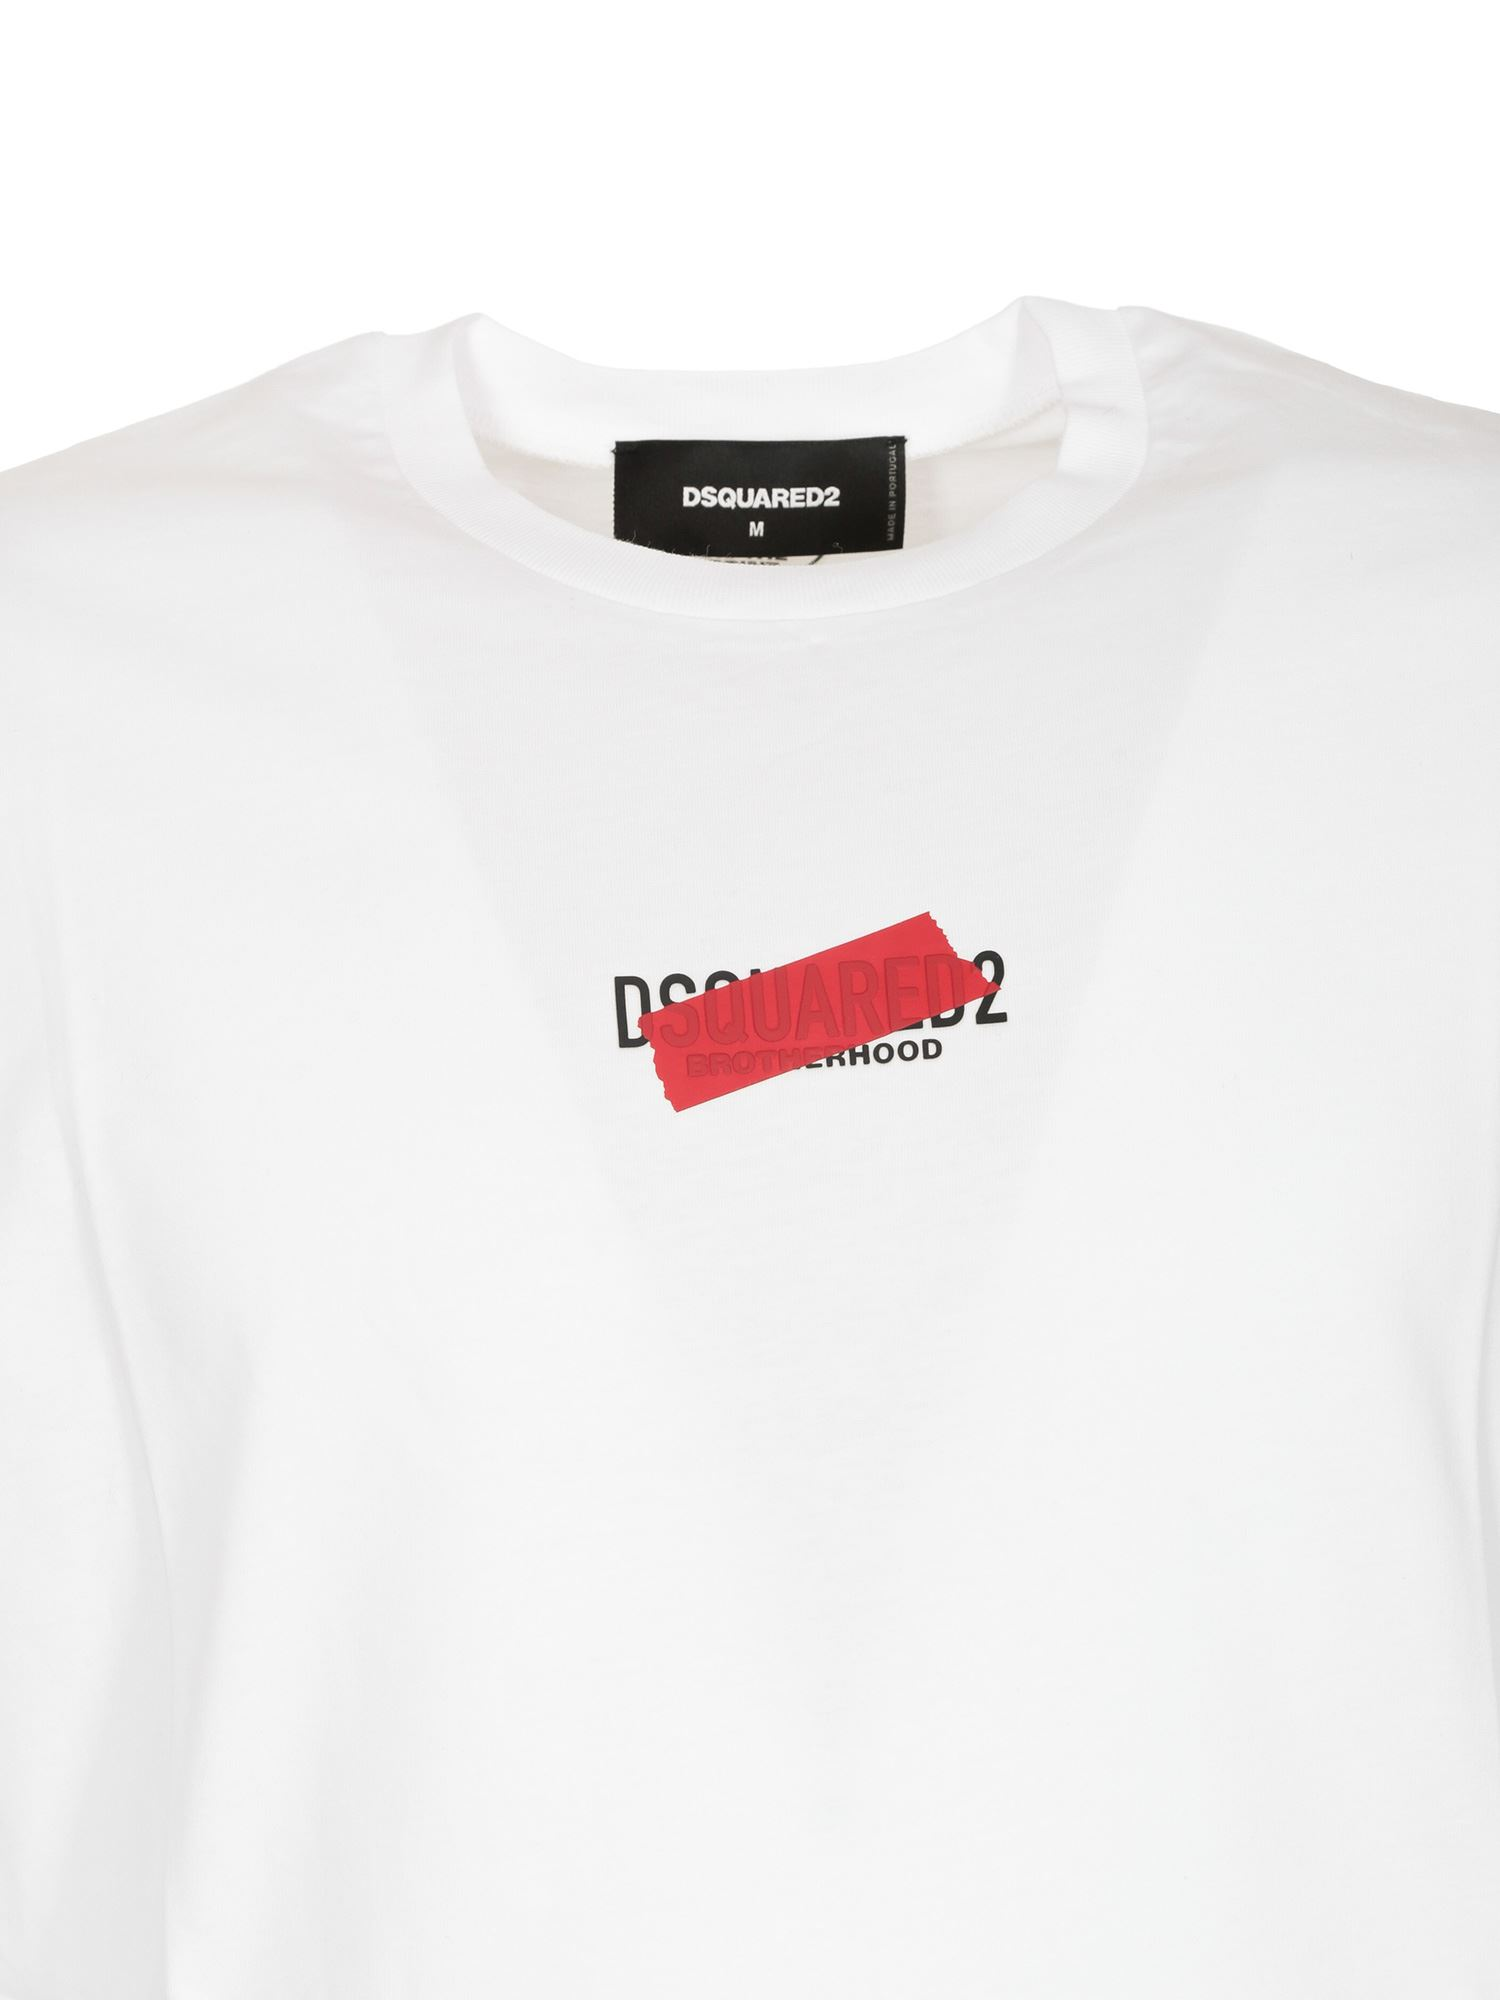 DSQUARED2 Cottons TAPED2 T-SHIRT IN WHITE